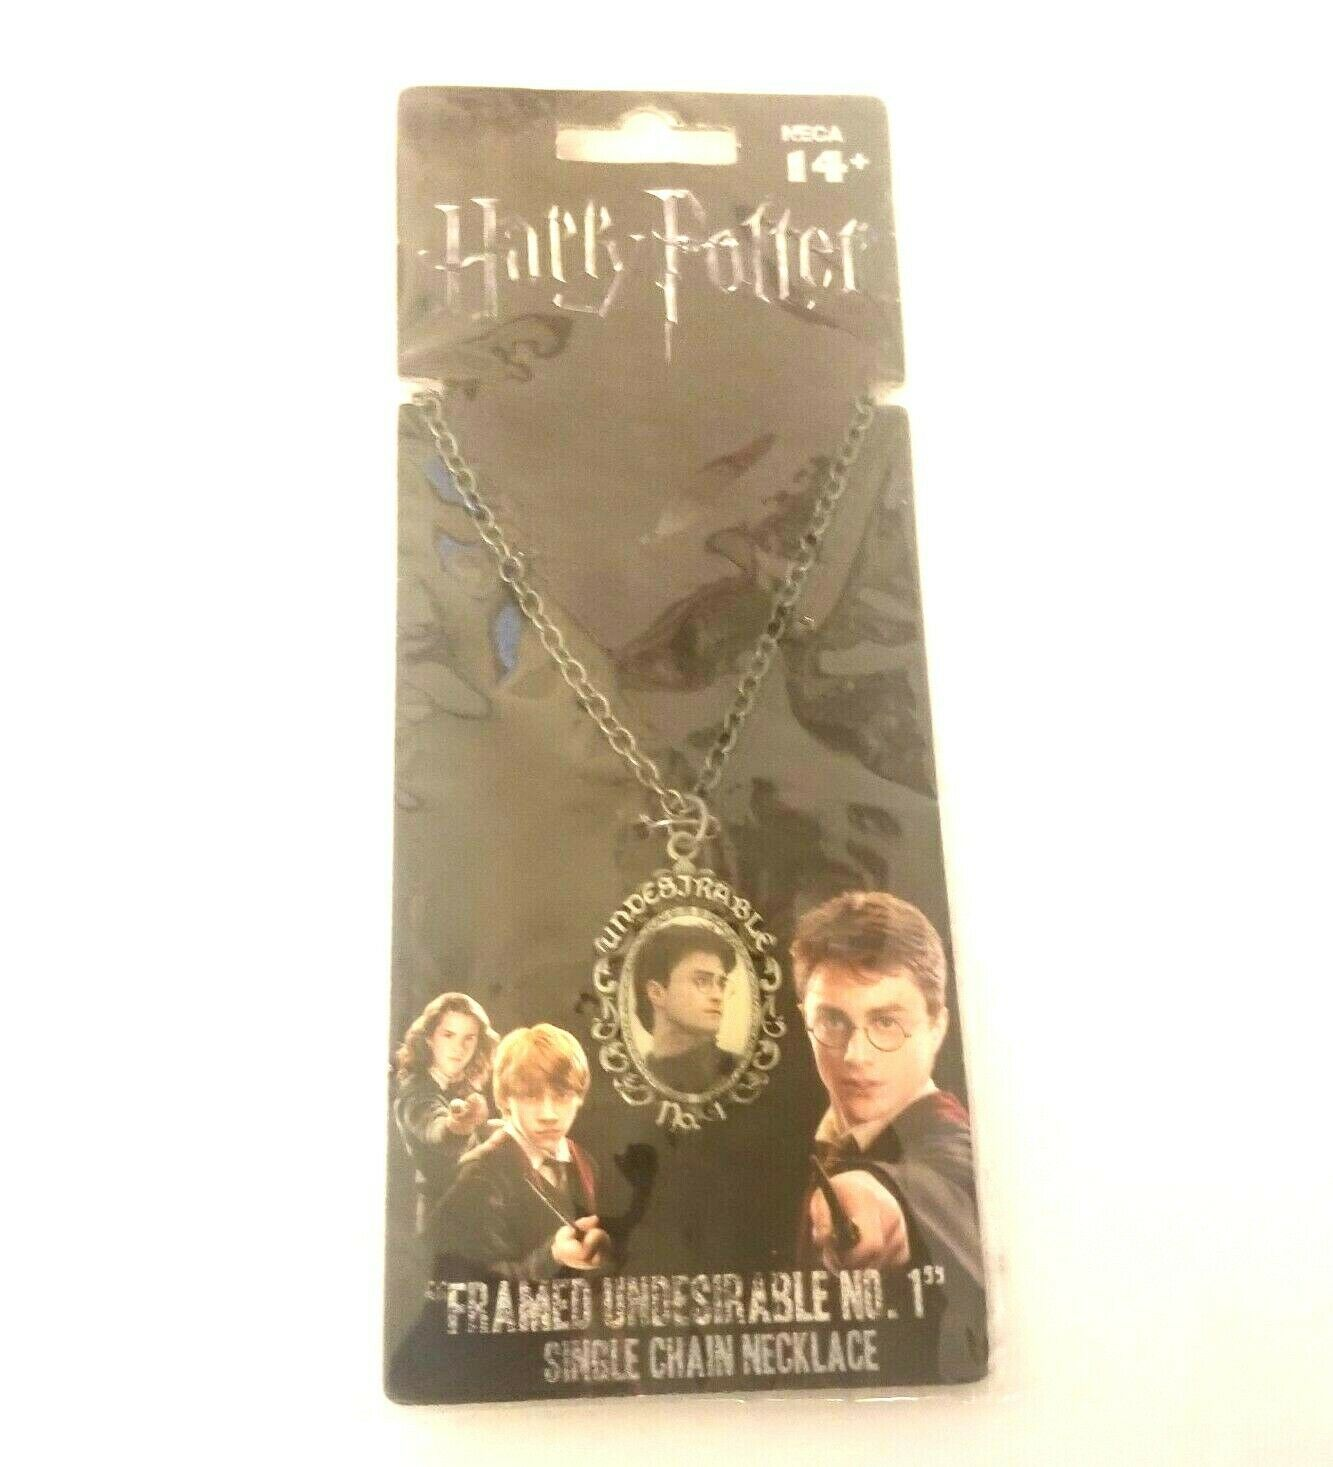 Harry Potter Framed Cameo Undesirable No. 1 Single Chain Necklace Silver Tone - $9.75